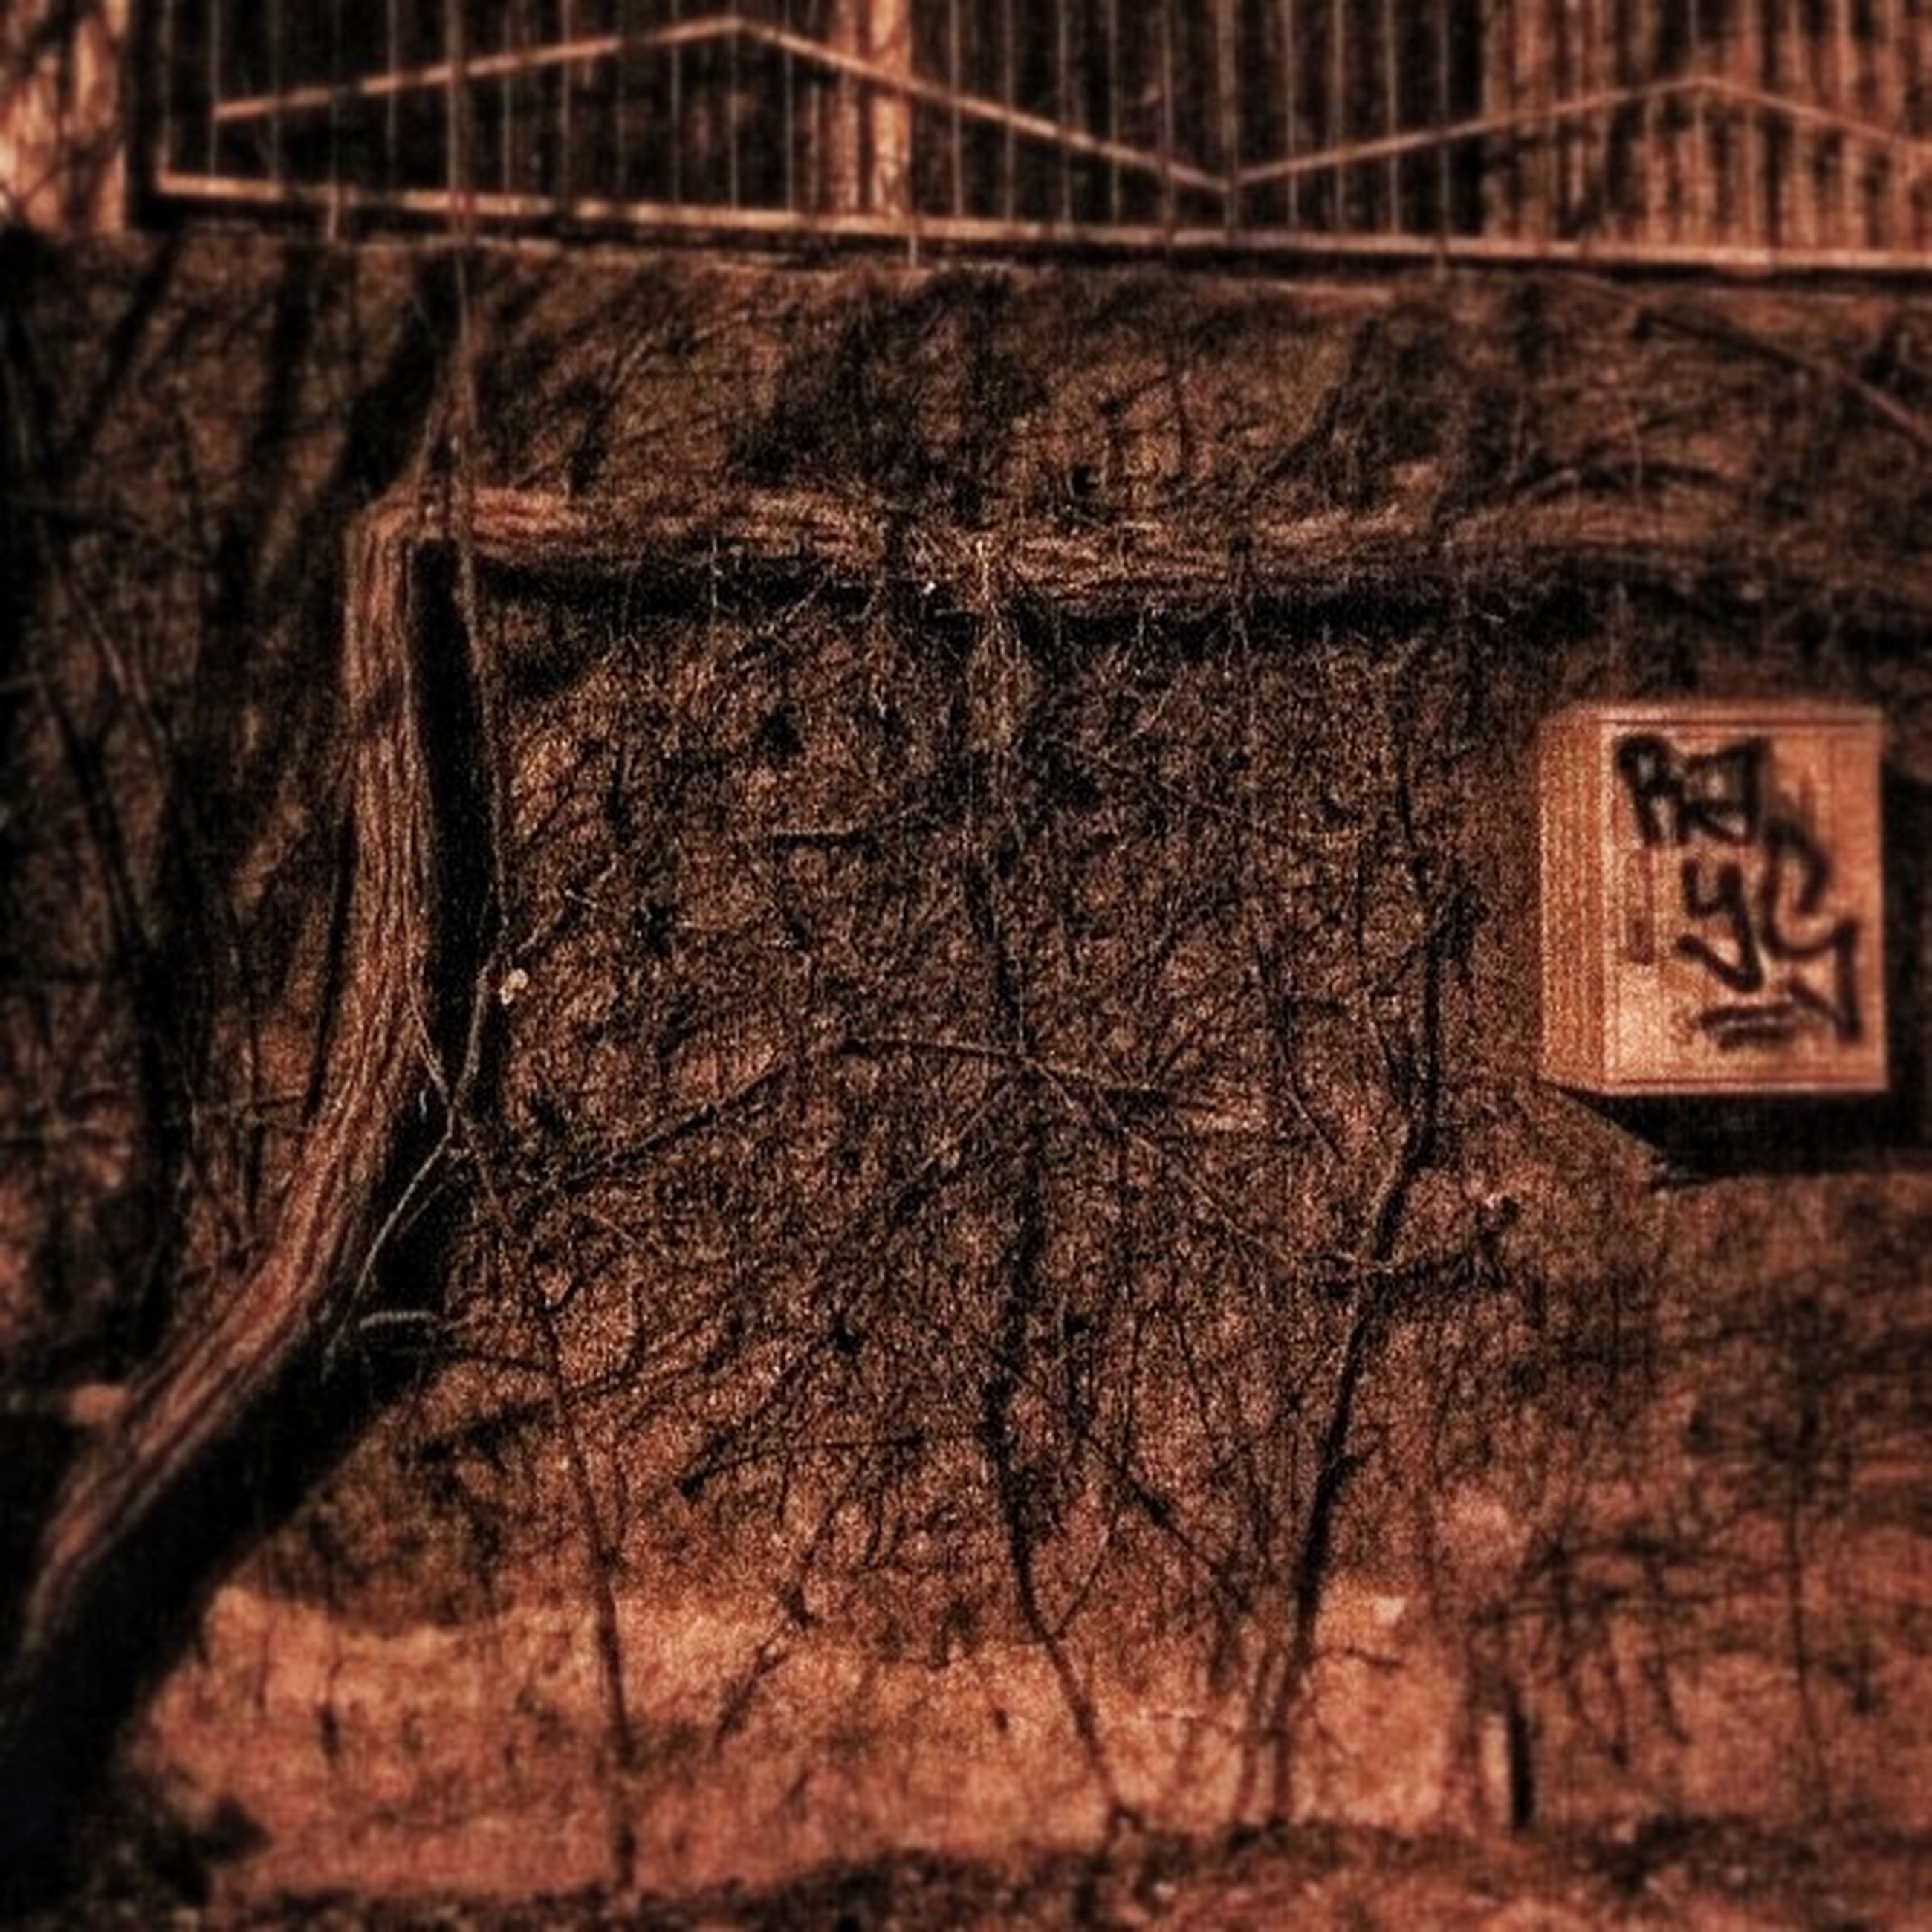 text, communication, wall - building feature, architecture, built structure, close-up, western script, wall, brick wall, building exterior, graffiti, day, no people, outdoors, old, tree, textured, weathered, capital letter, metal